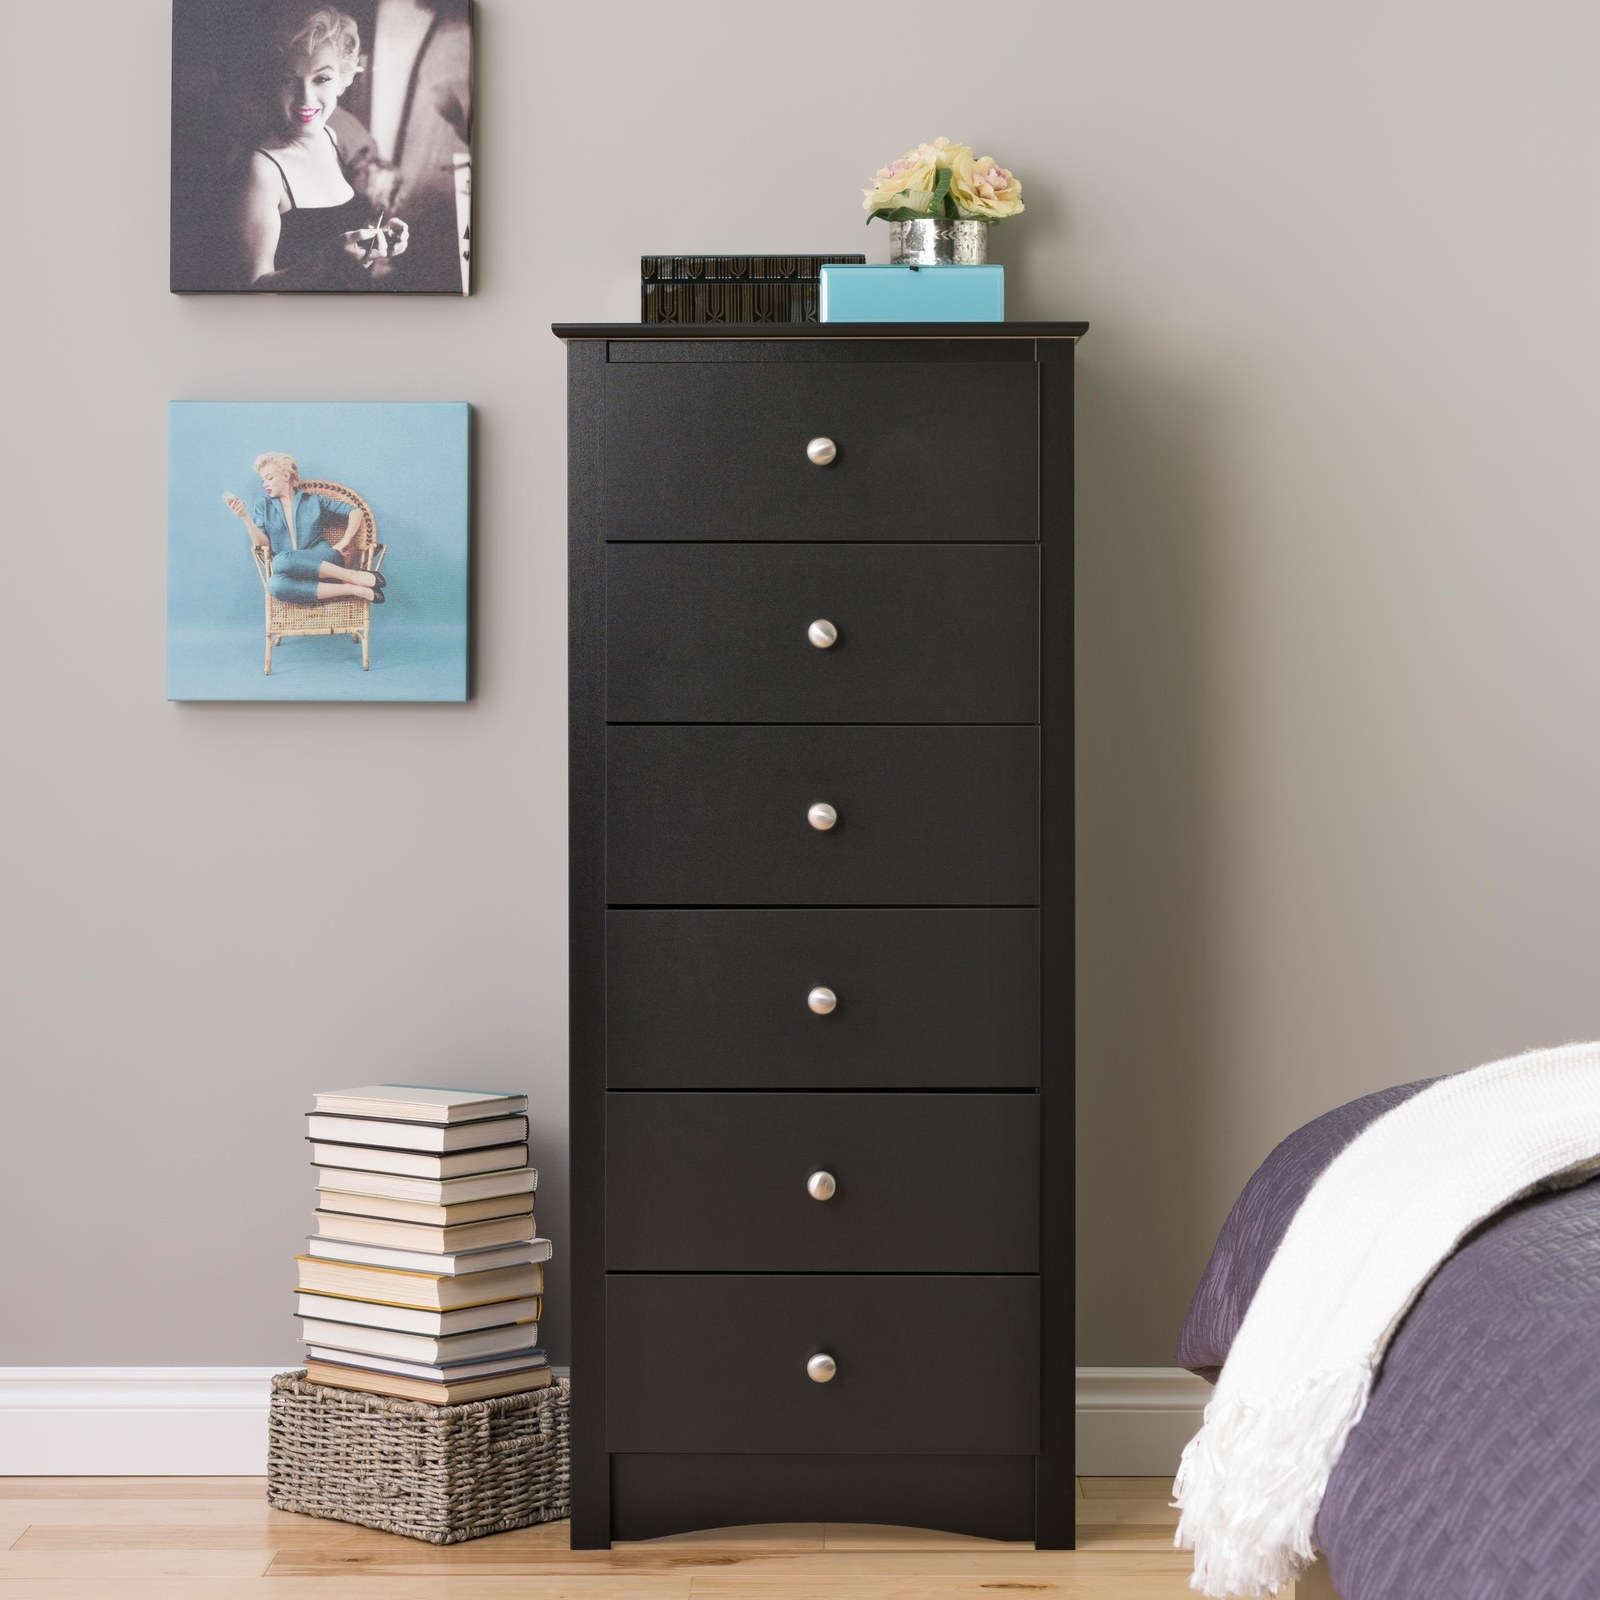 """Promising review: """"This dresser is beautiful! My daughter can fit more clothing in this that I had originally predicted! It is VERY sturdy, but not too heavy. It is perfect if you want something thinner than the usual dressers out there. I ordered this online and had it shipped to my home. It was easy to assemble, but take your time and don't rush putting the drawers together! It will all be worth it when you're done!"""" —FanOfGoodStuffPrice: $148.99"""